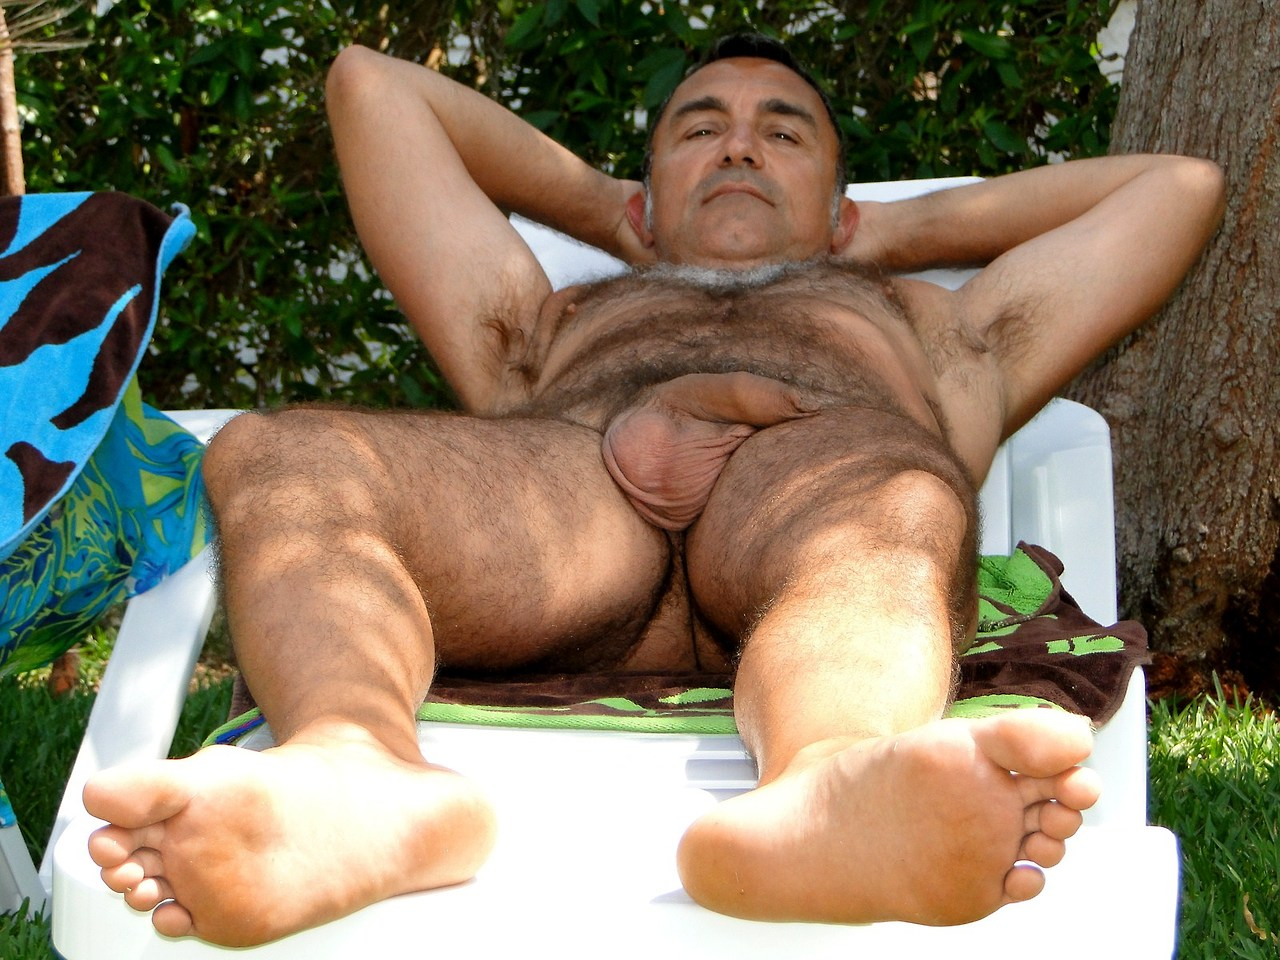 Gay movietures of very small chubby boys 8